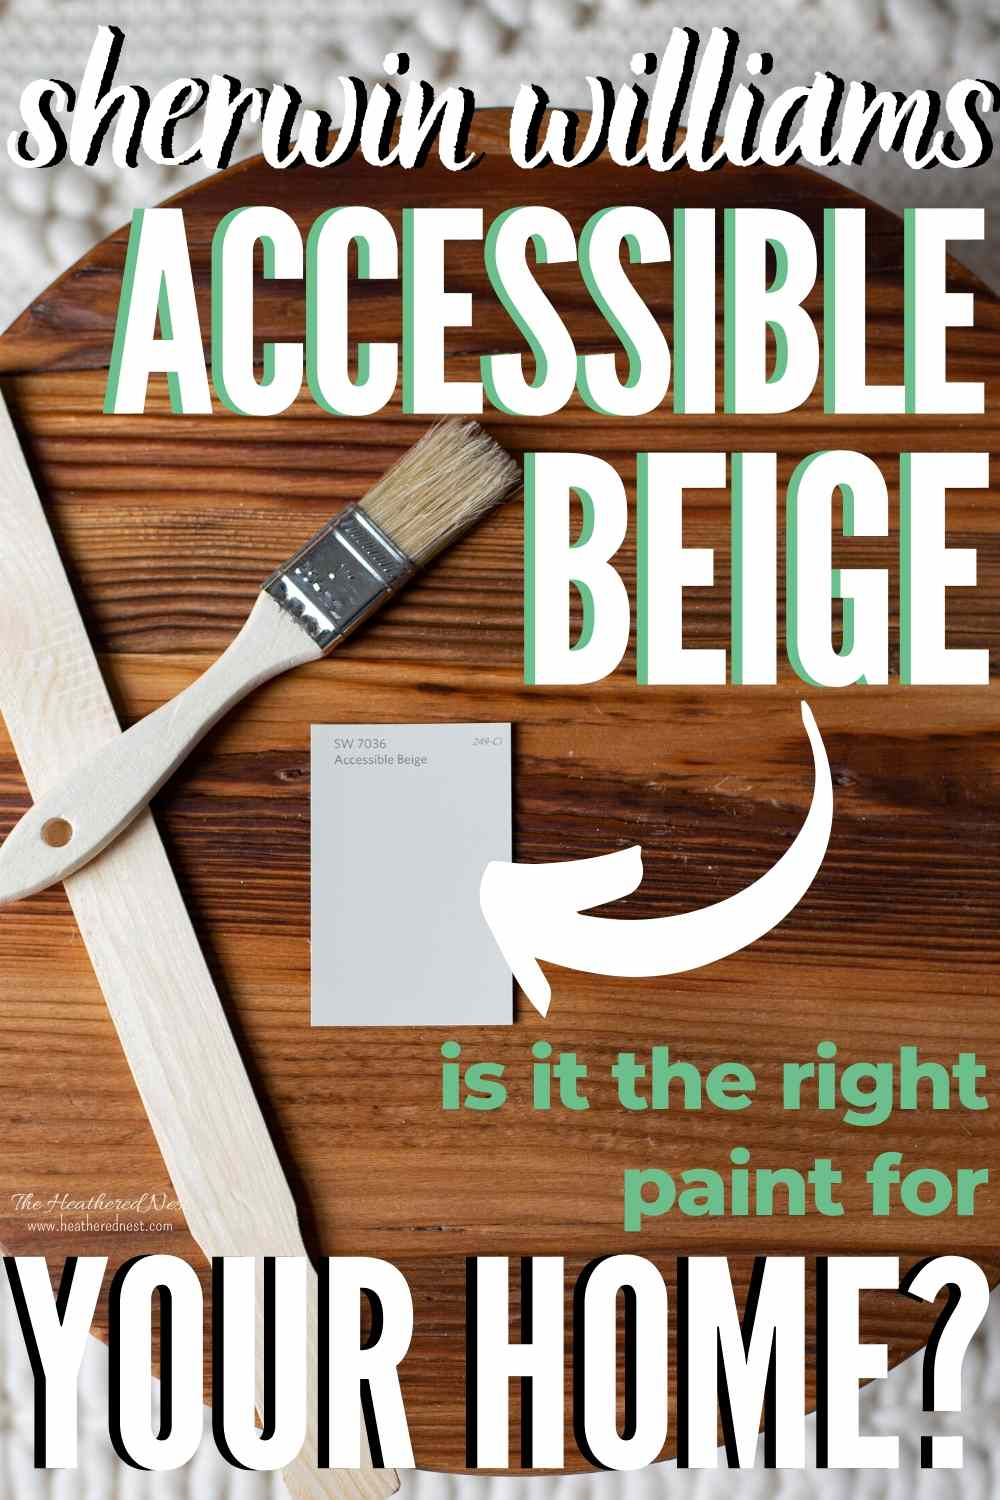 accessible beige swatch on a wooden background